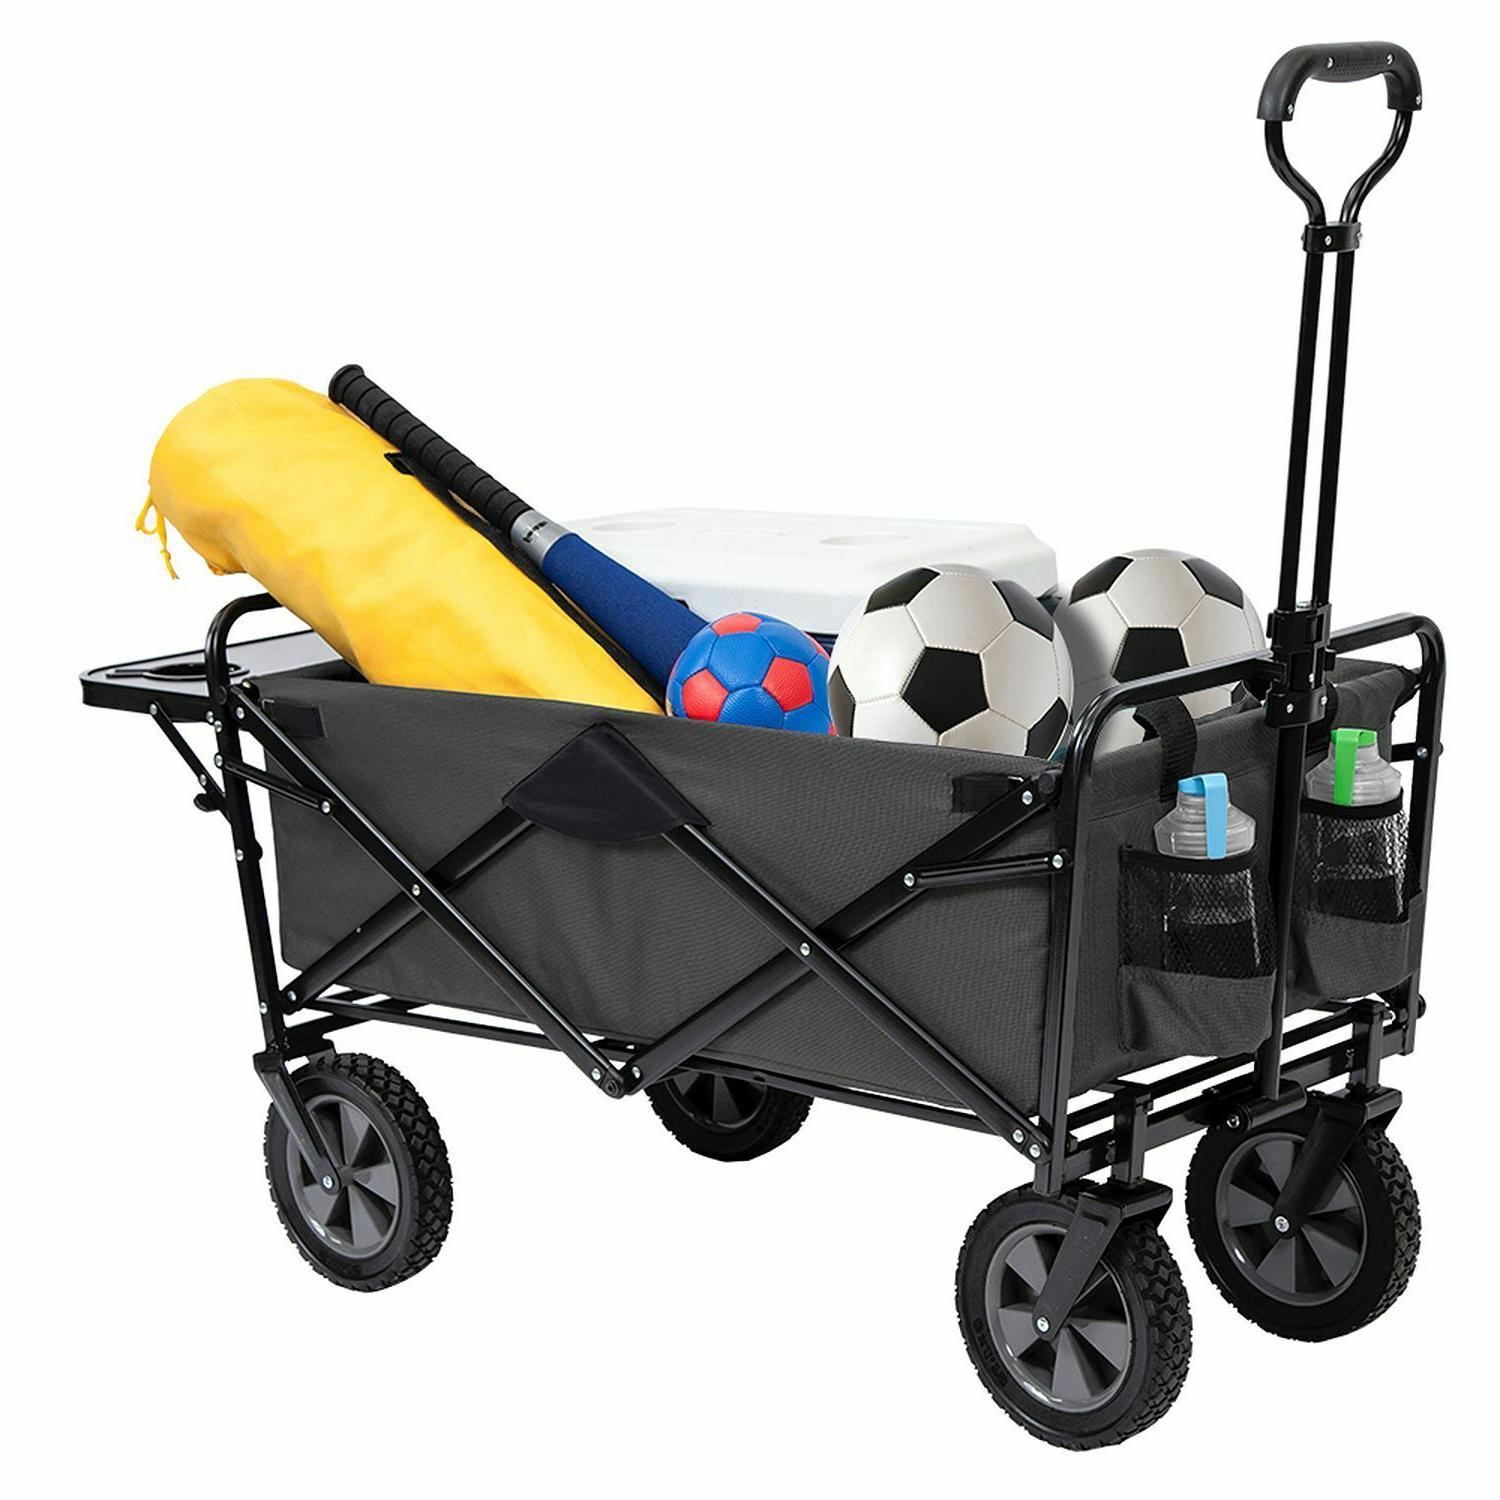 Collapsible Folding Wagon Cart Camping Beach Frame assorted